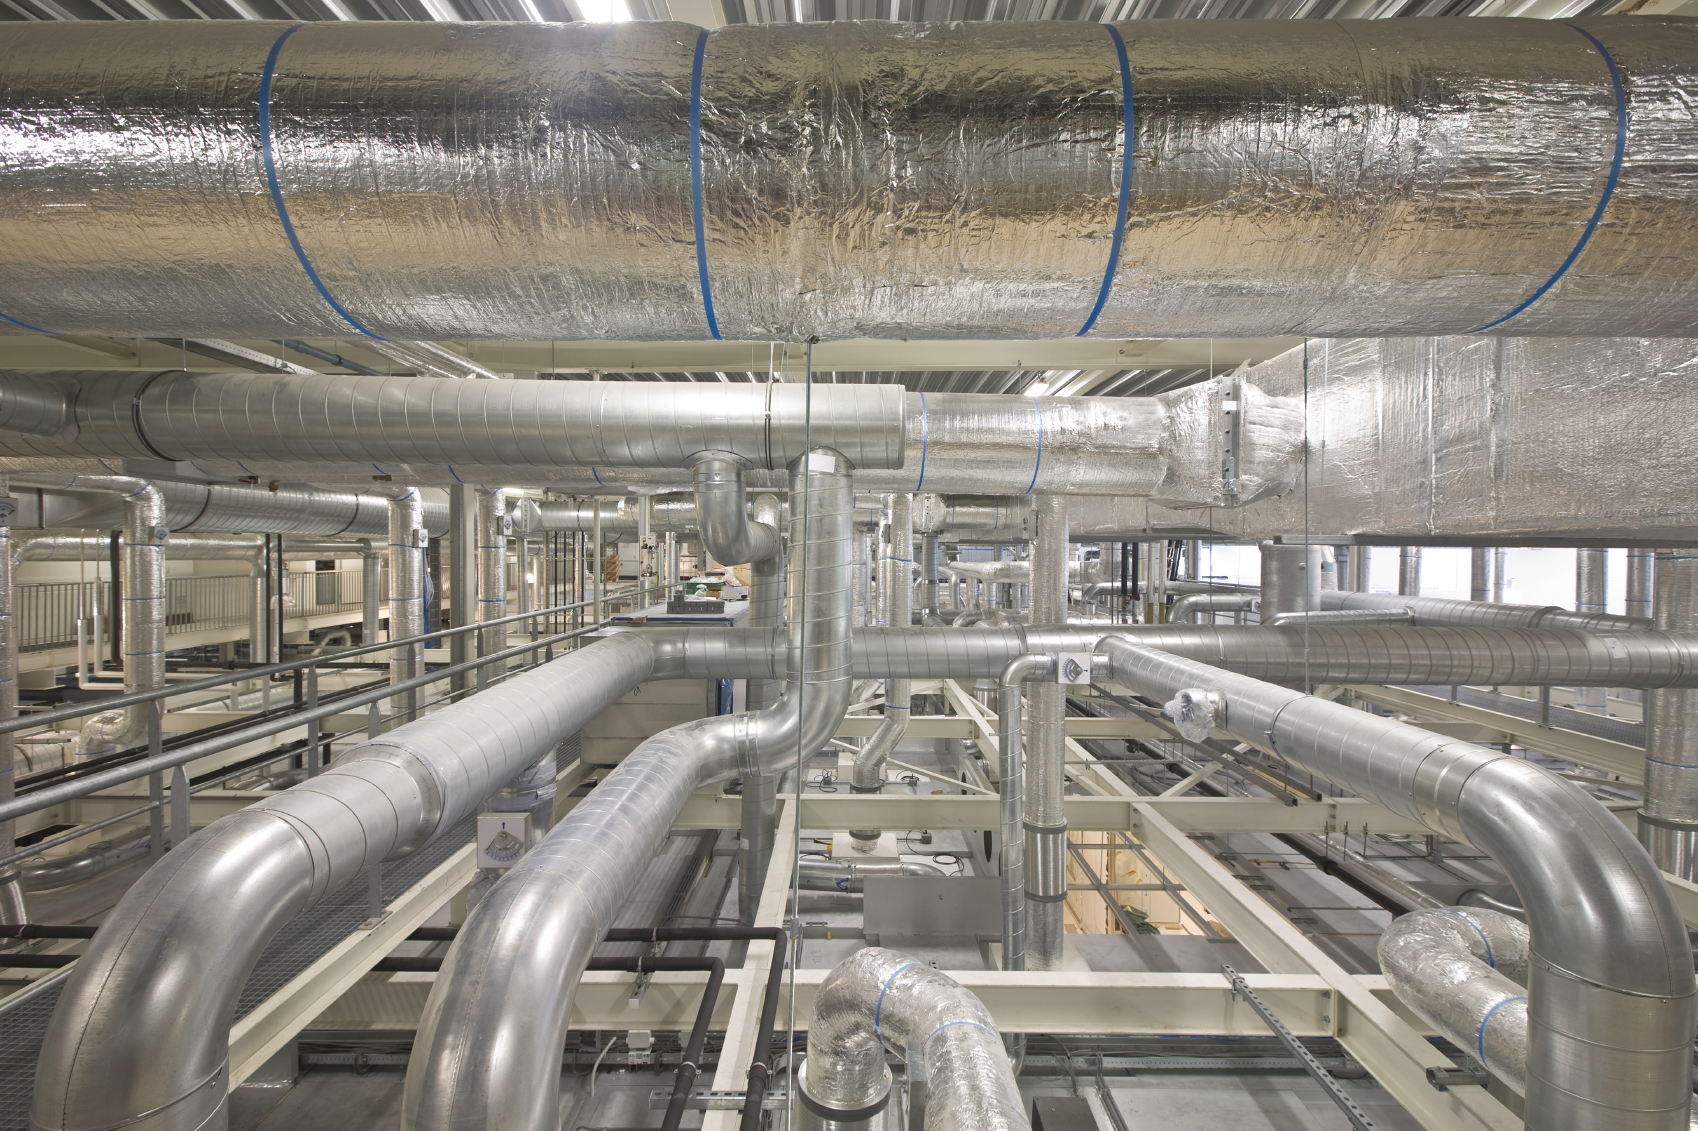 Industrial Cooling Duct : Sound and thorough cleanair uk ductwork inspection